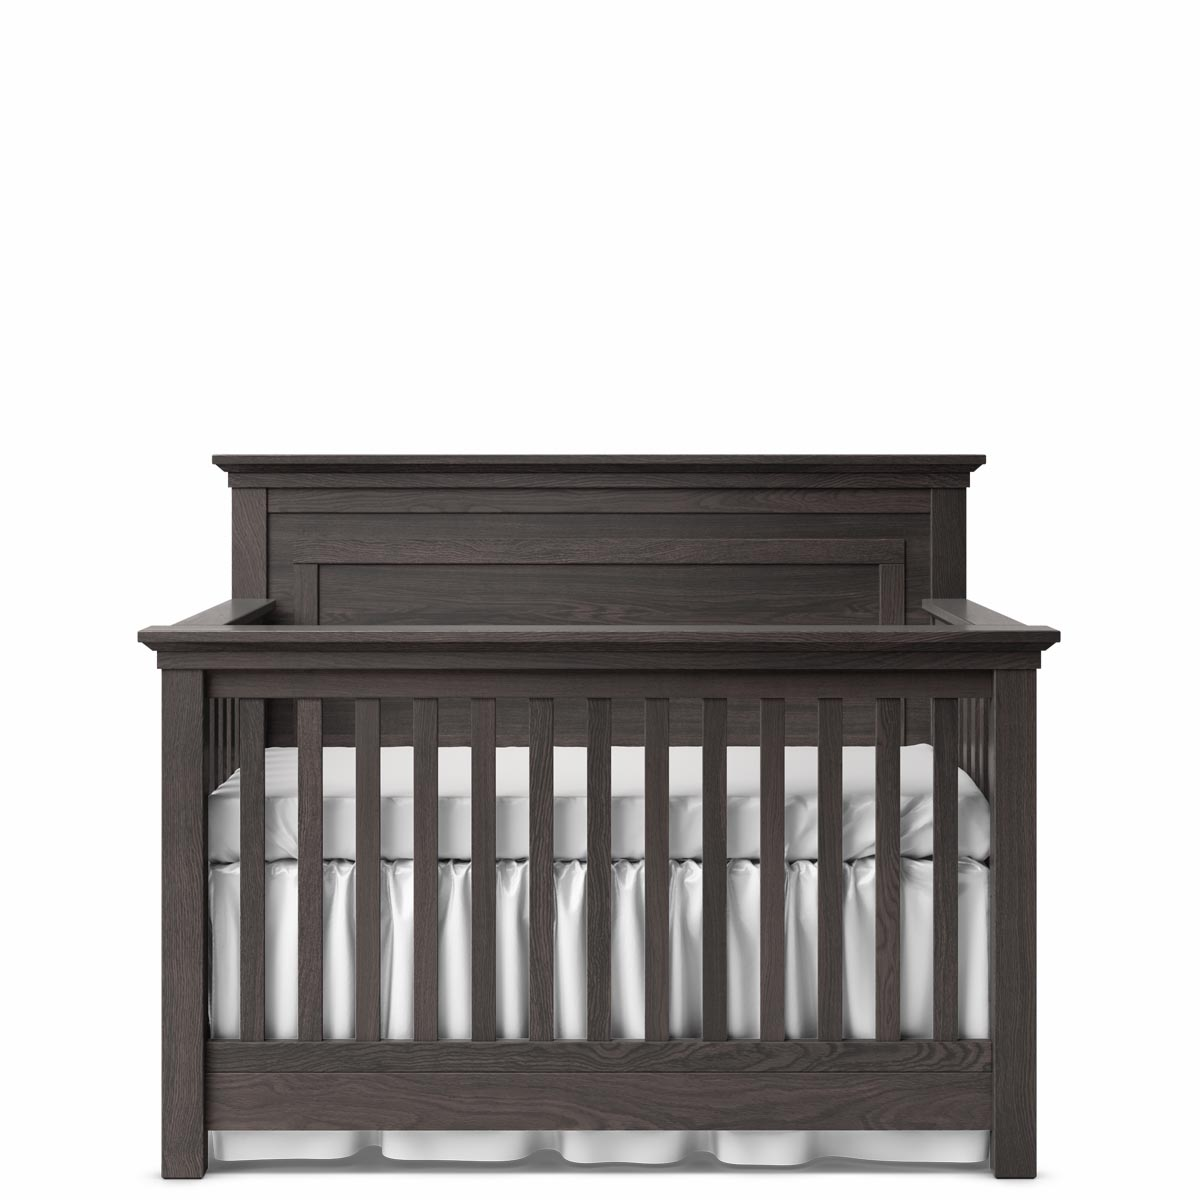 Romina Furniture Karisma Panel Crib - Oil Grey